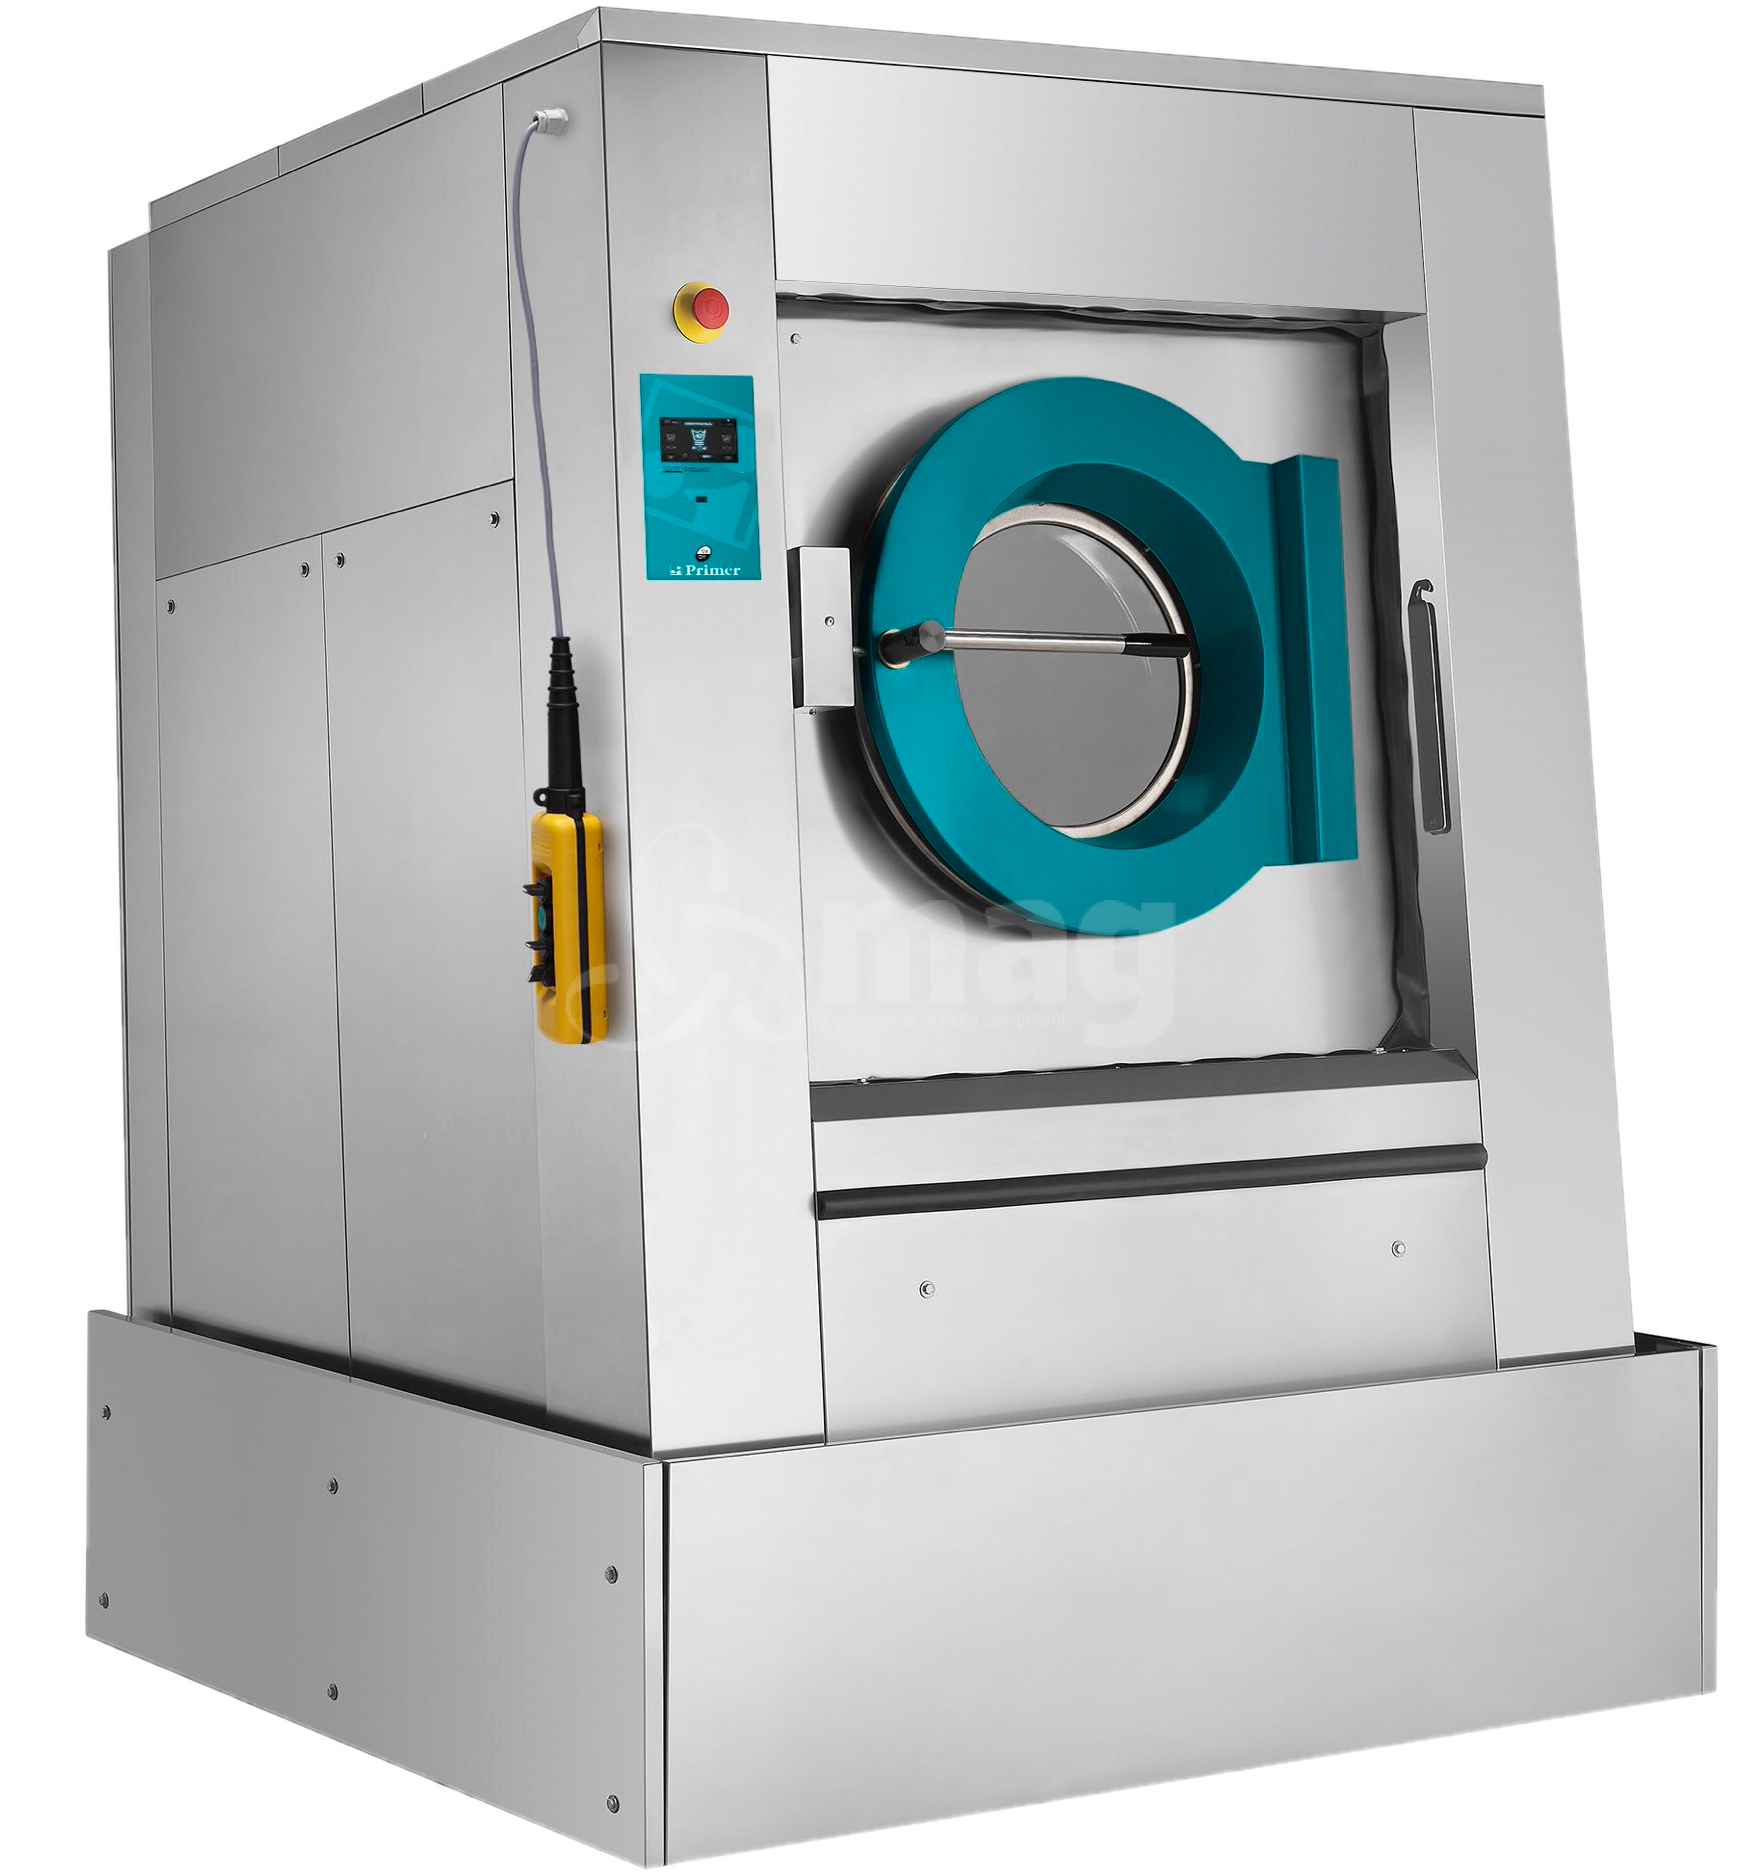 Commerical Washer For Home ~ Industrial washing machine for commercial use in laundry